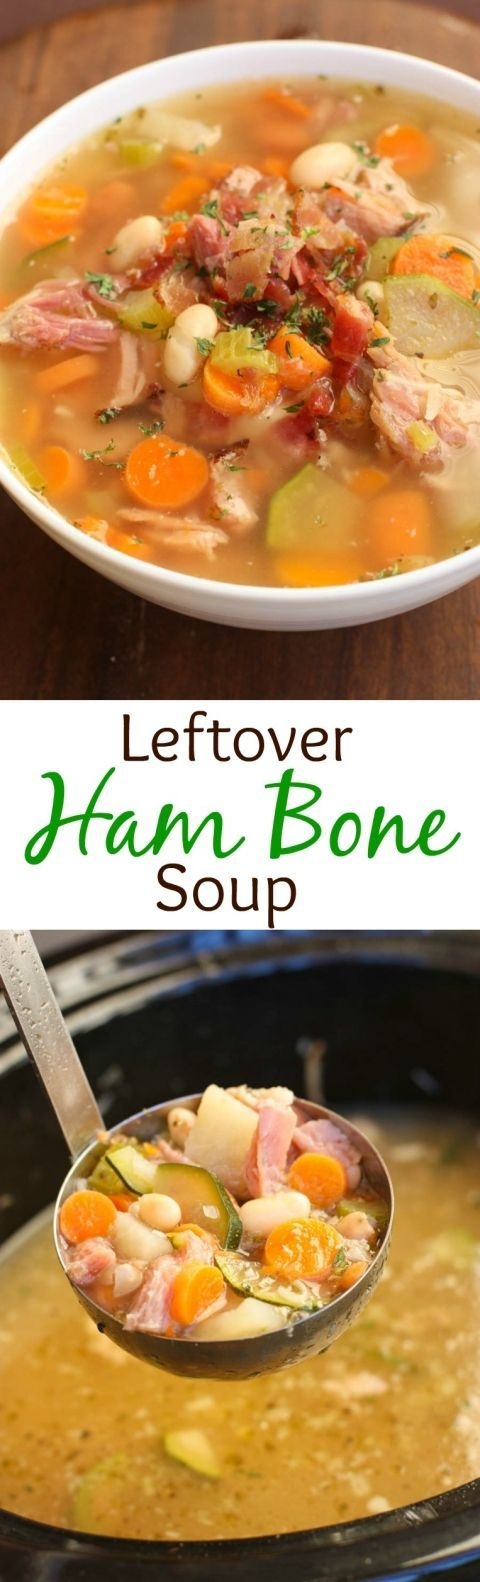 Slow Cooker Leftover Ham Bone Soup| Tastes Better From Scratch